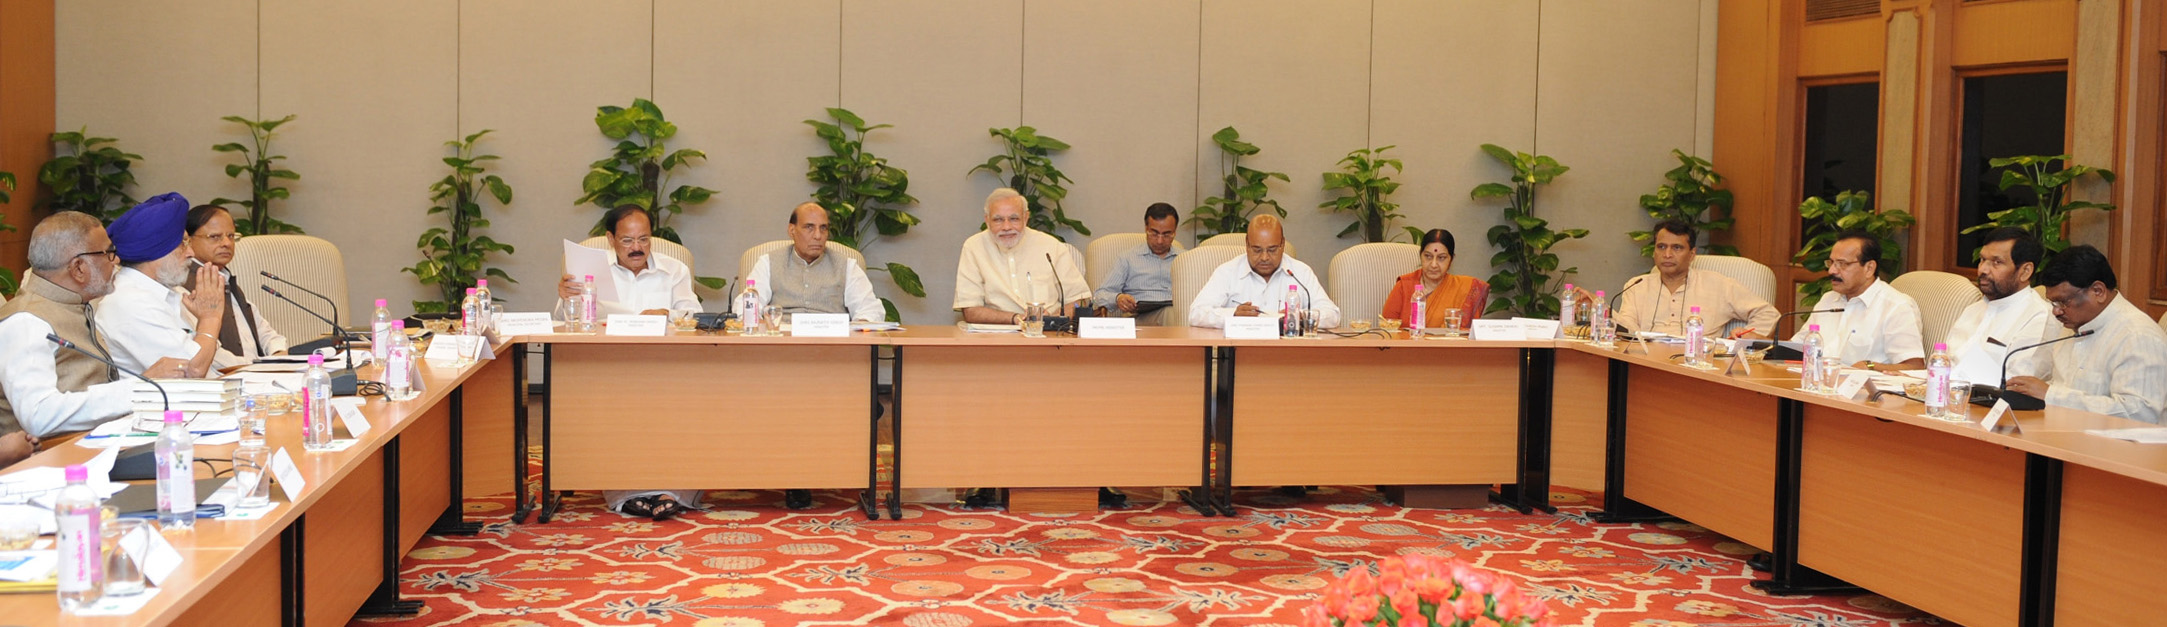 The Prime Minister, Shri Narendra Modi chairing the meeting of the National Committee on Nation-wide Celebration of 125th Birth Anniversary of the Dr. B.R. Ambedkar, in New Delhi on July 23, 2015.